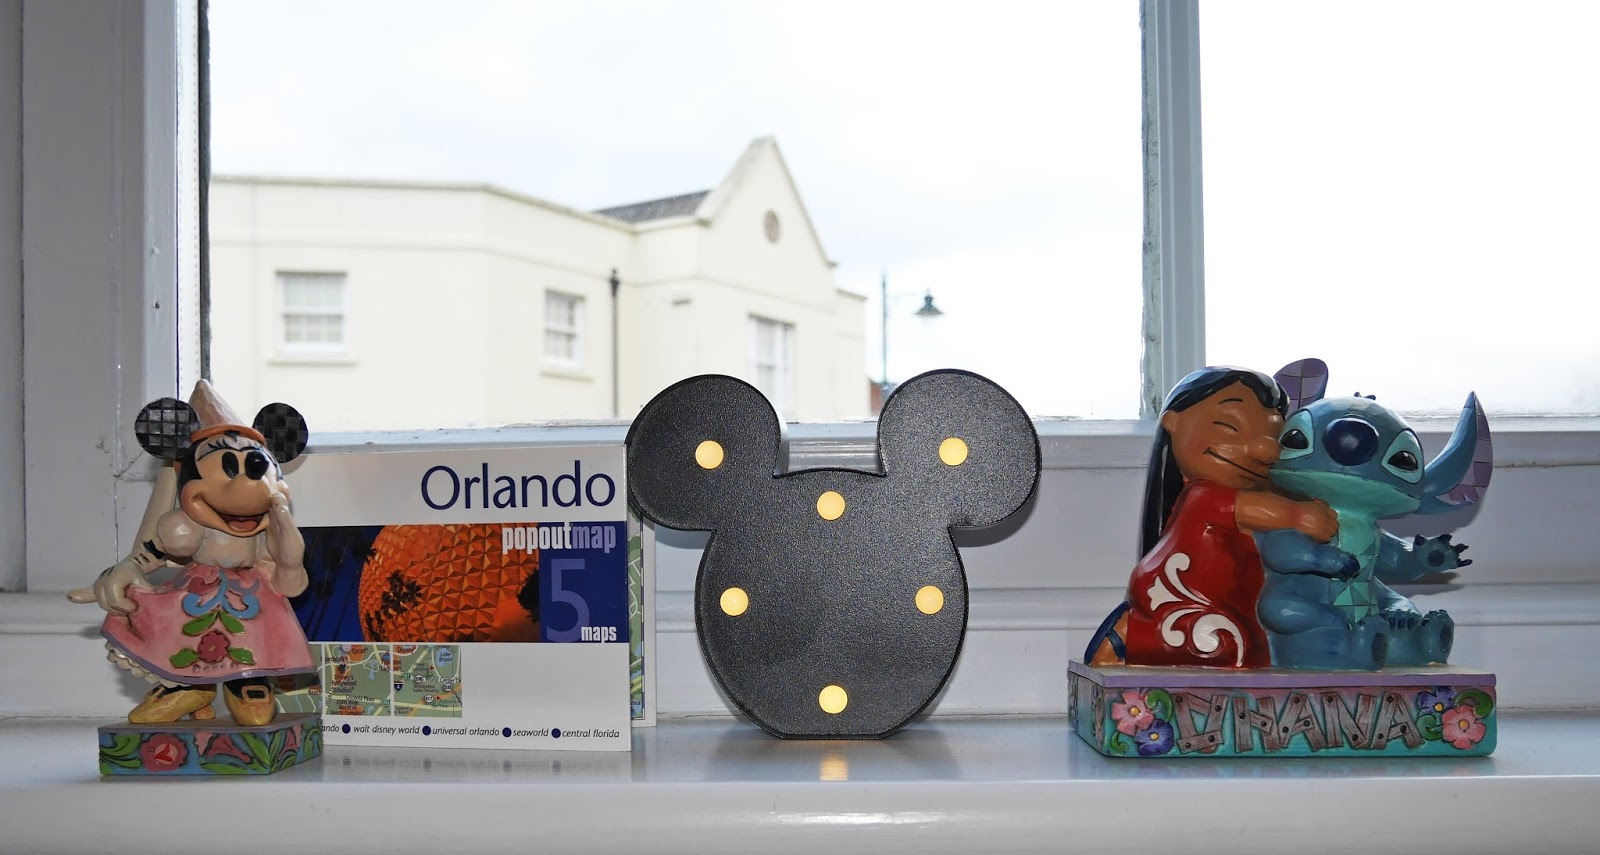 Saving for Orlando - travel goals for 2018. Orlando-themed ornaments.